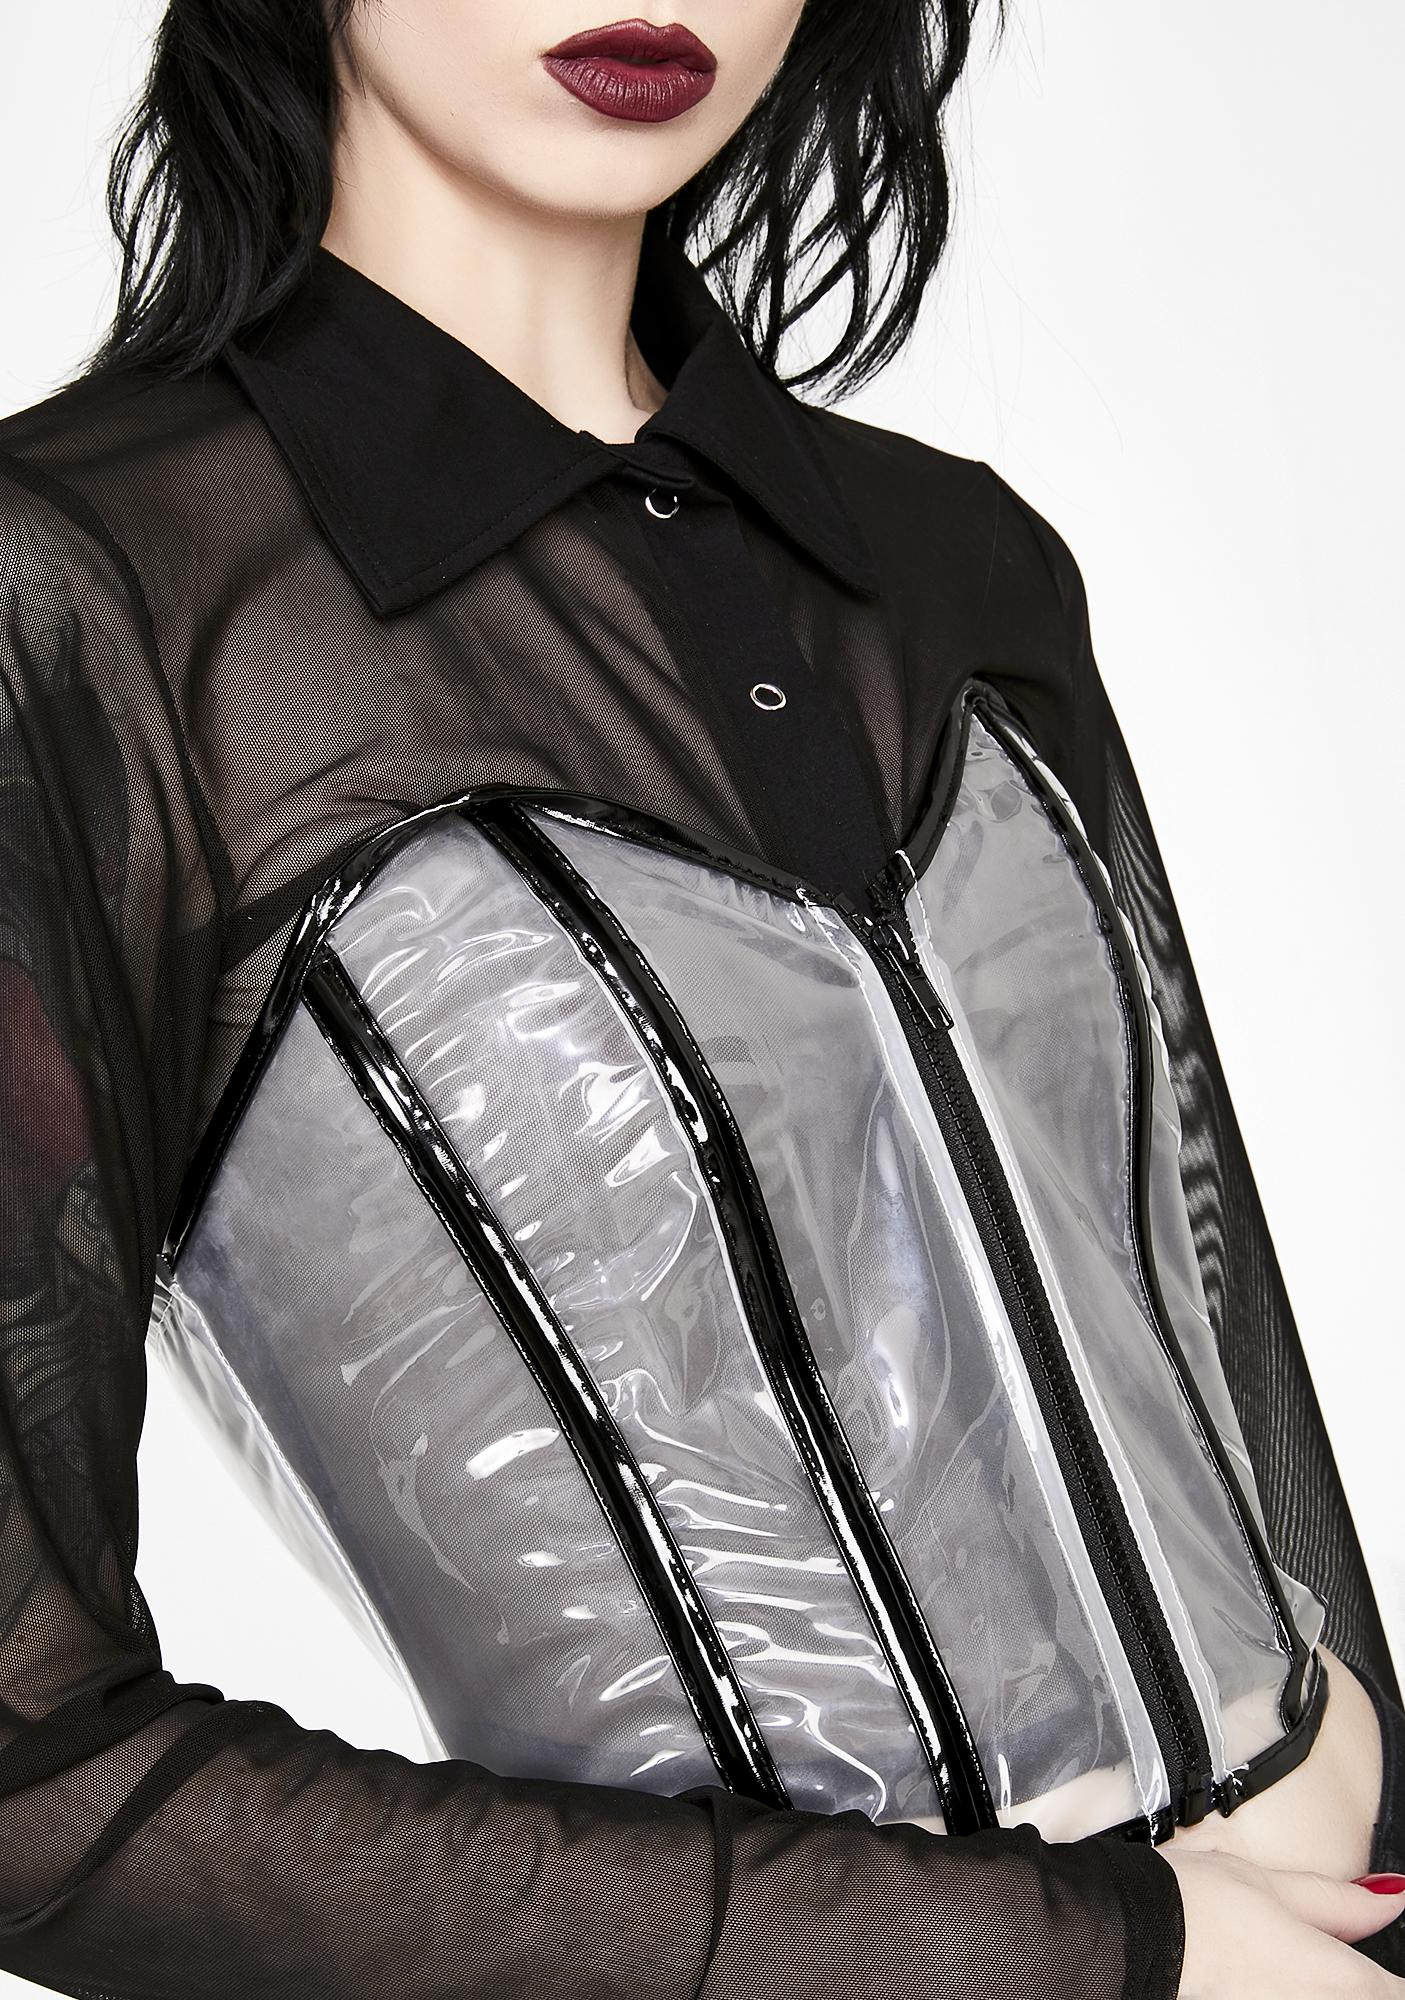 Lose Control Clear Bustier